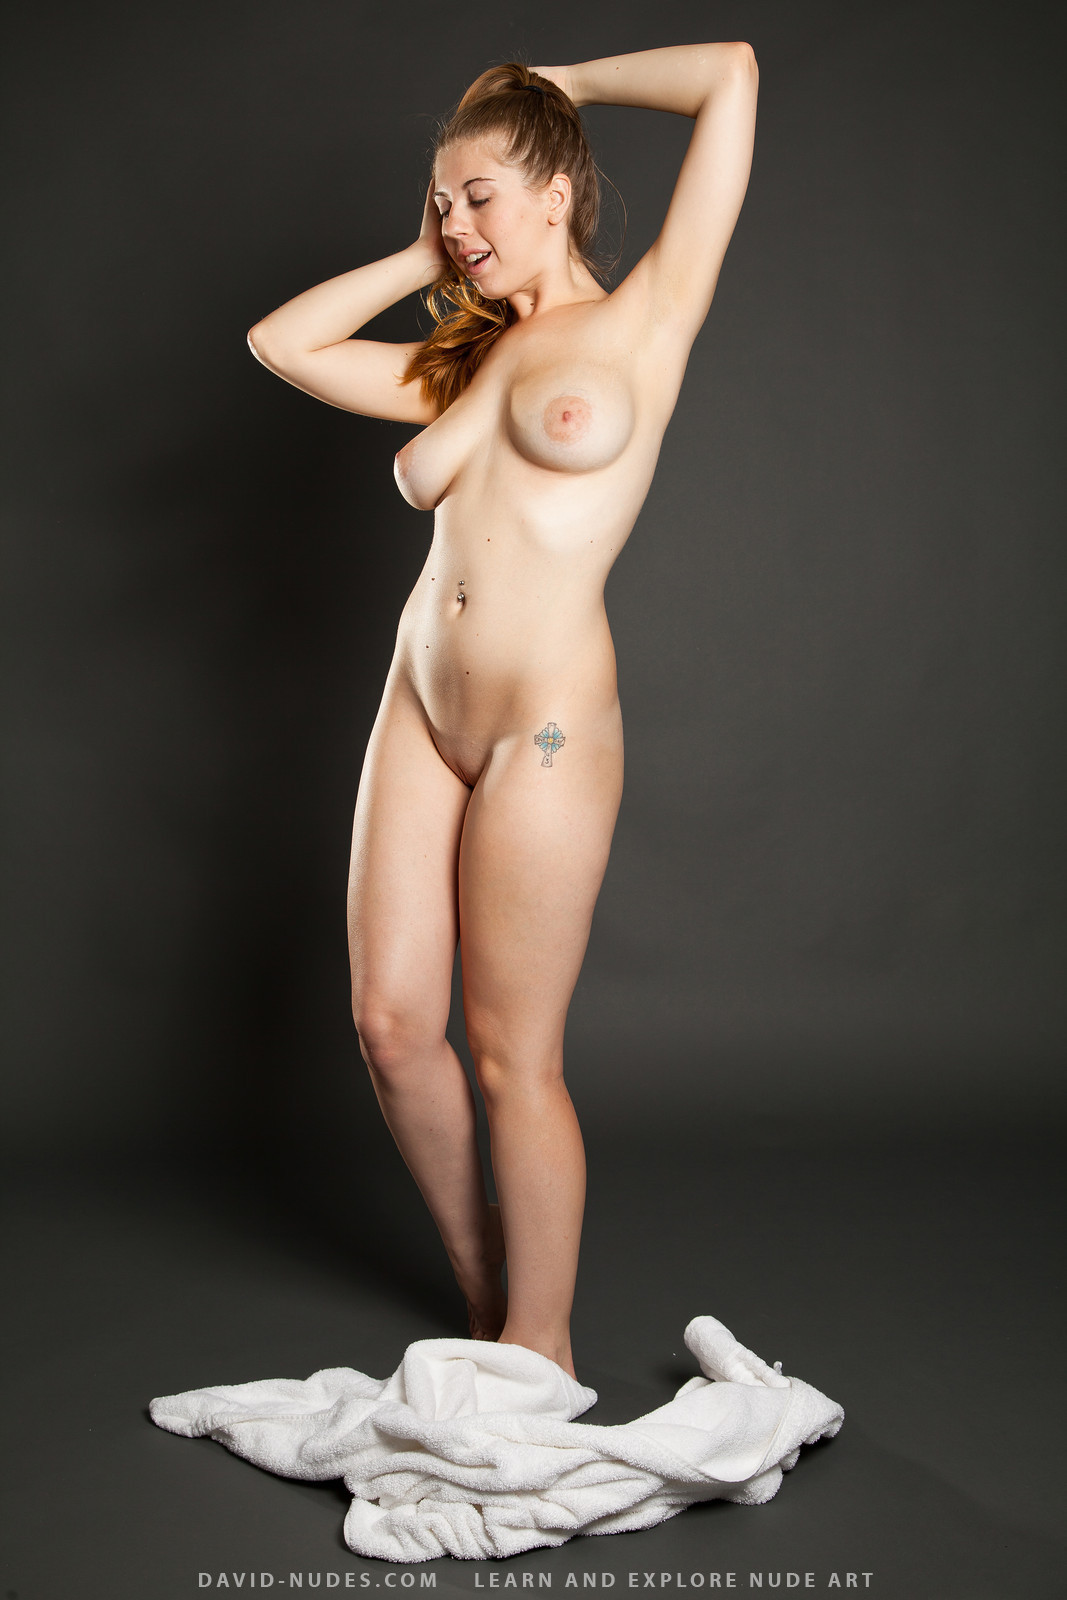 Rate amature naked photos